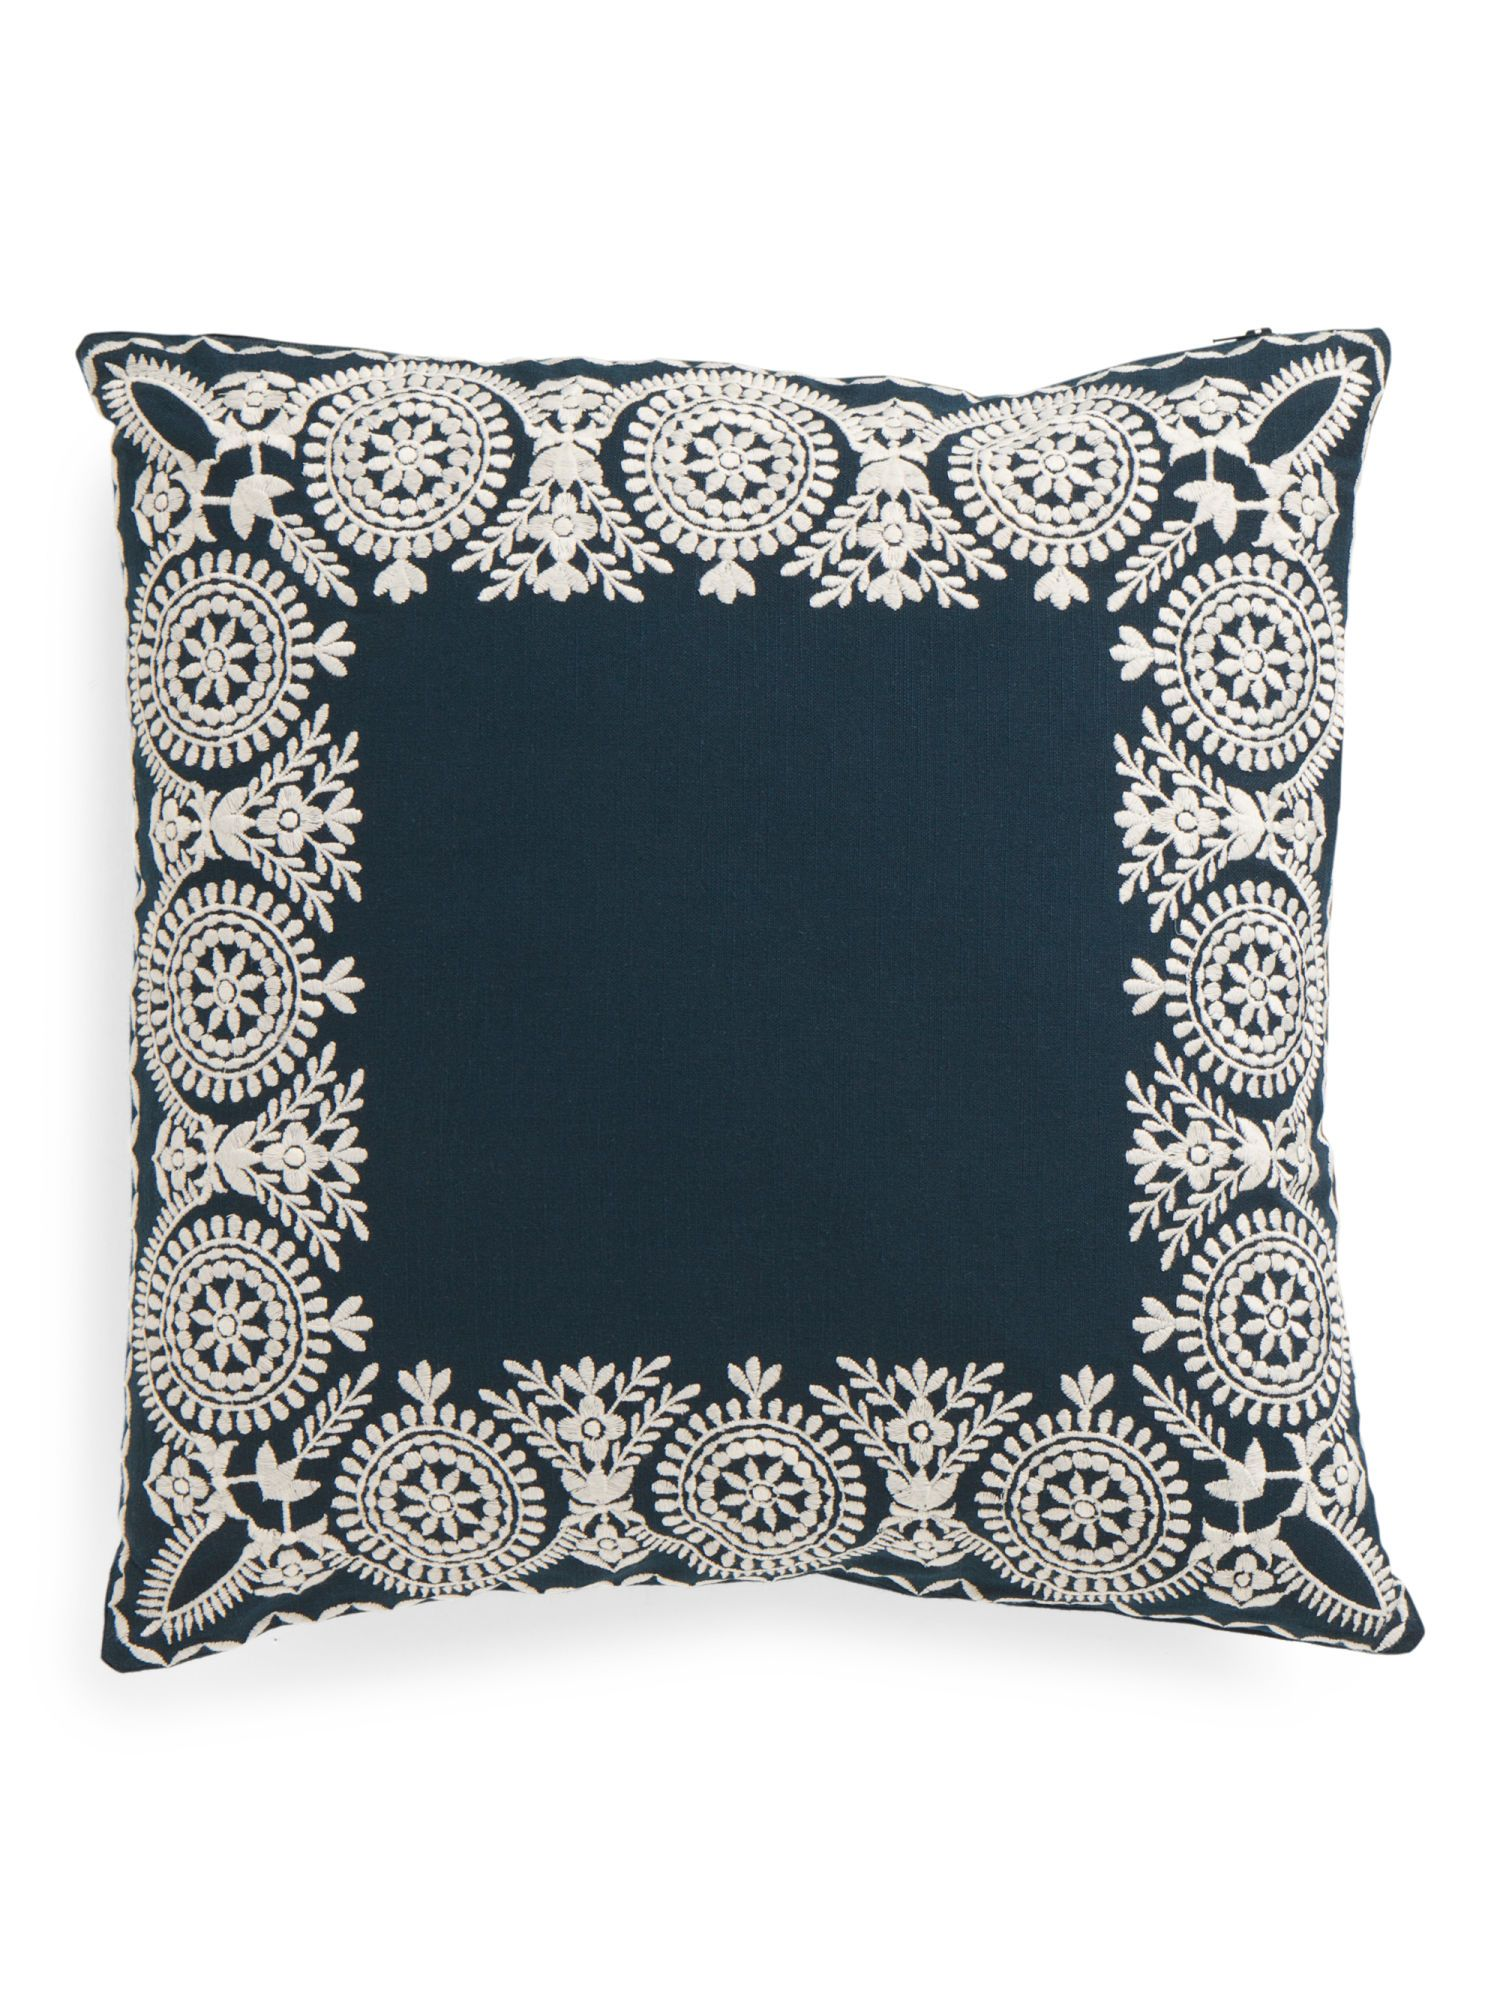 Made In India 18x18 Embroidered Border Pillow Cojines